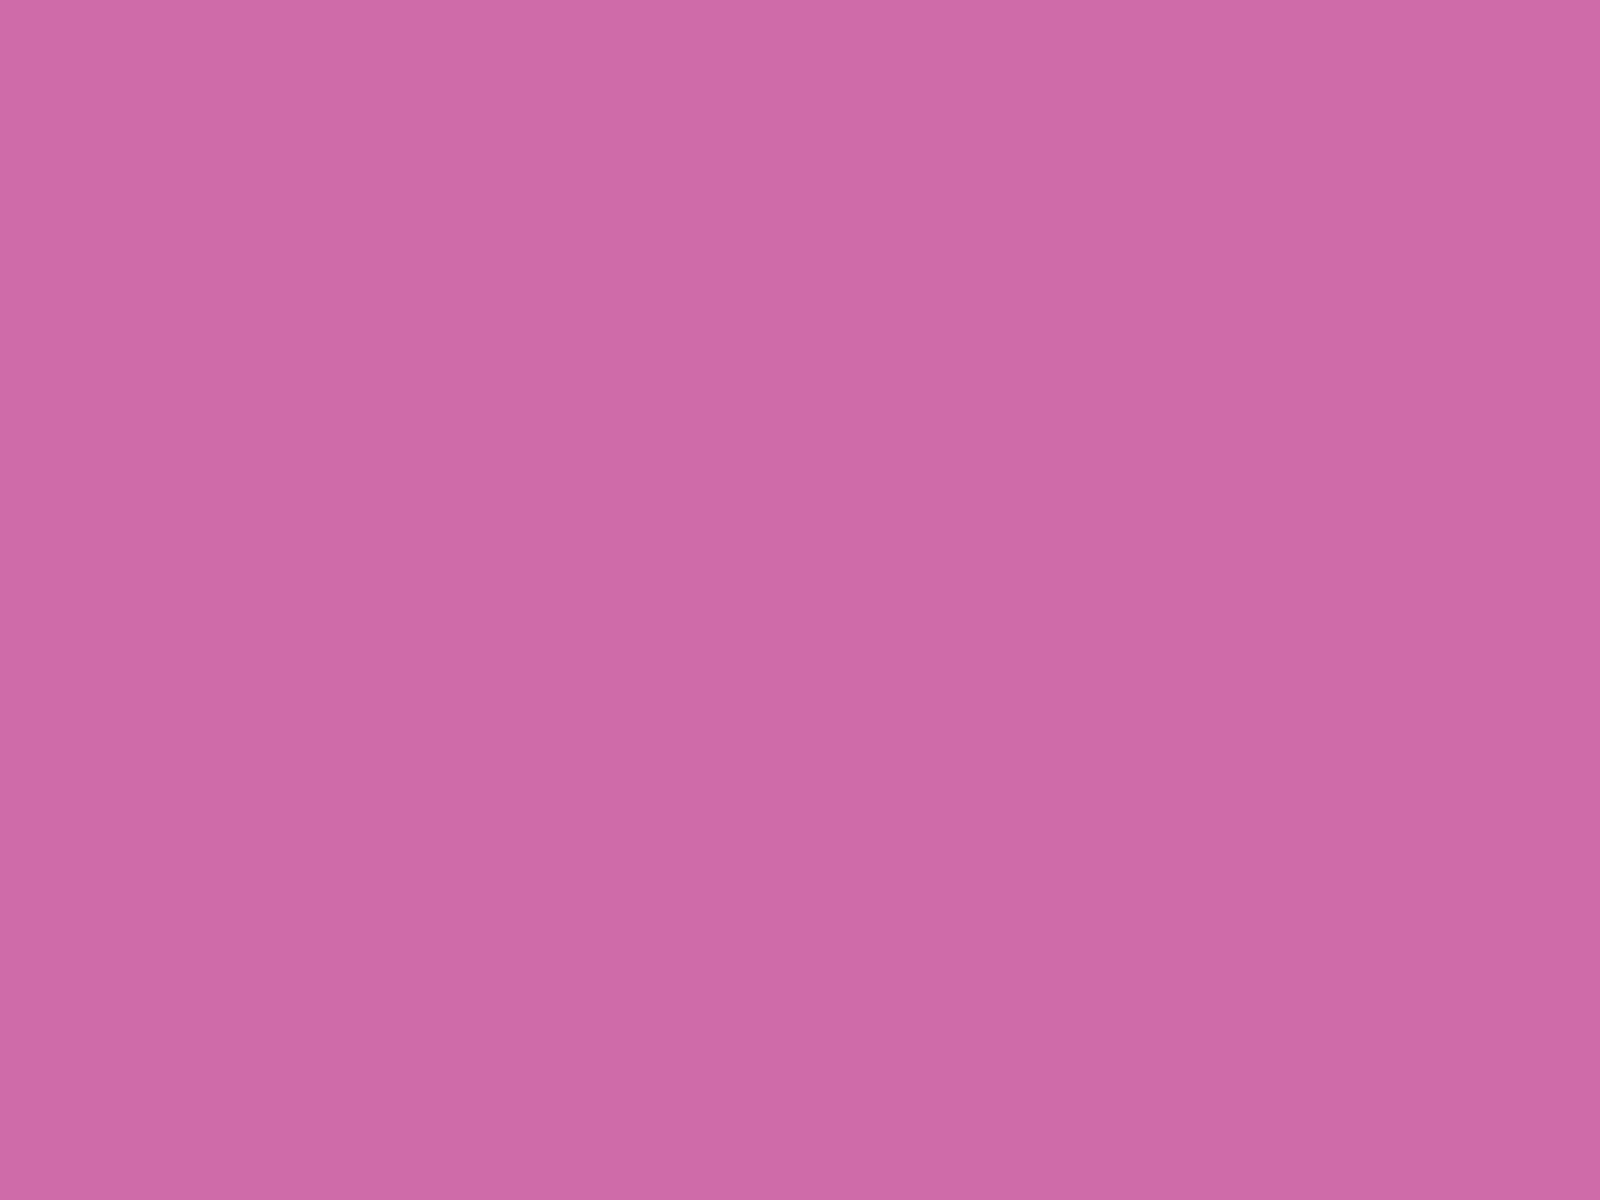 1600x1200 Super Pink Solid Color Background